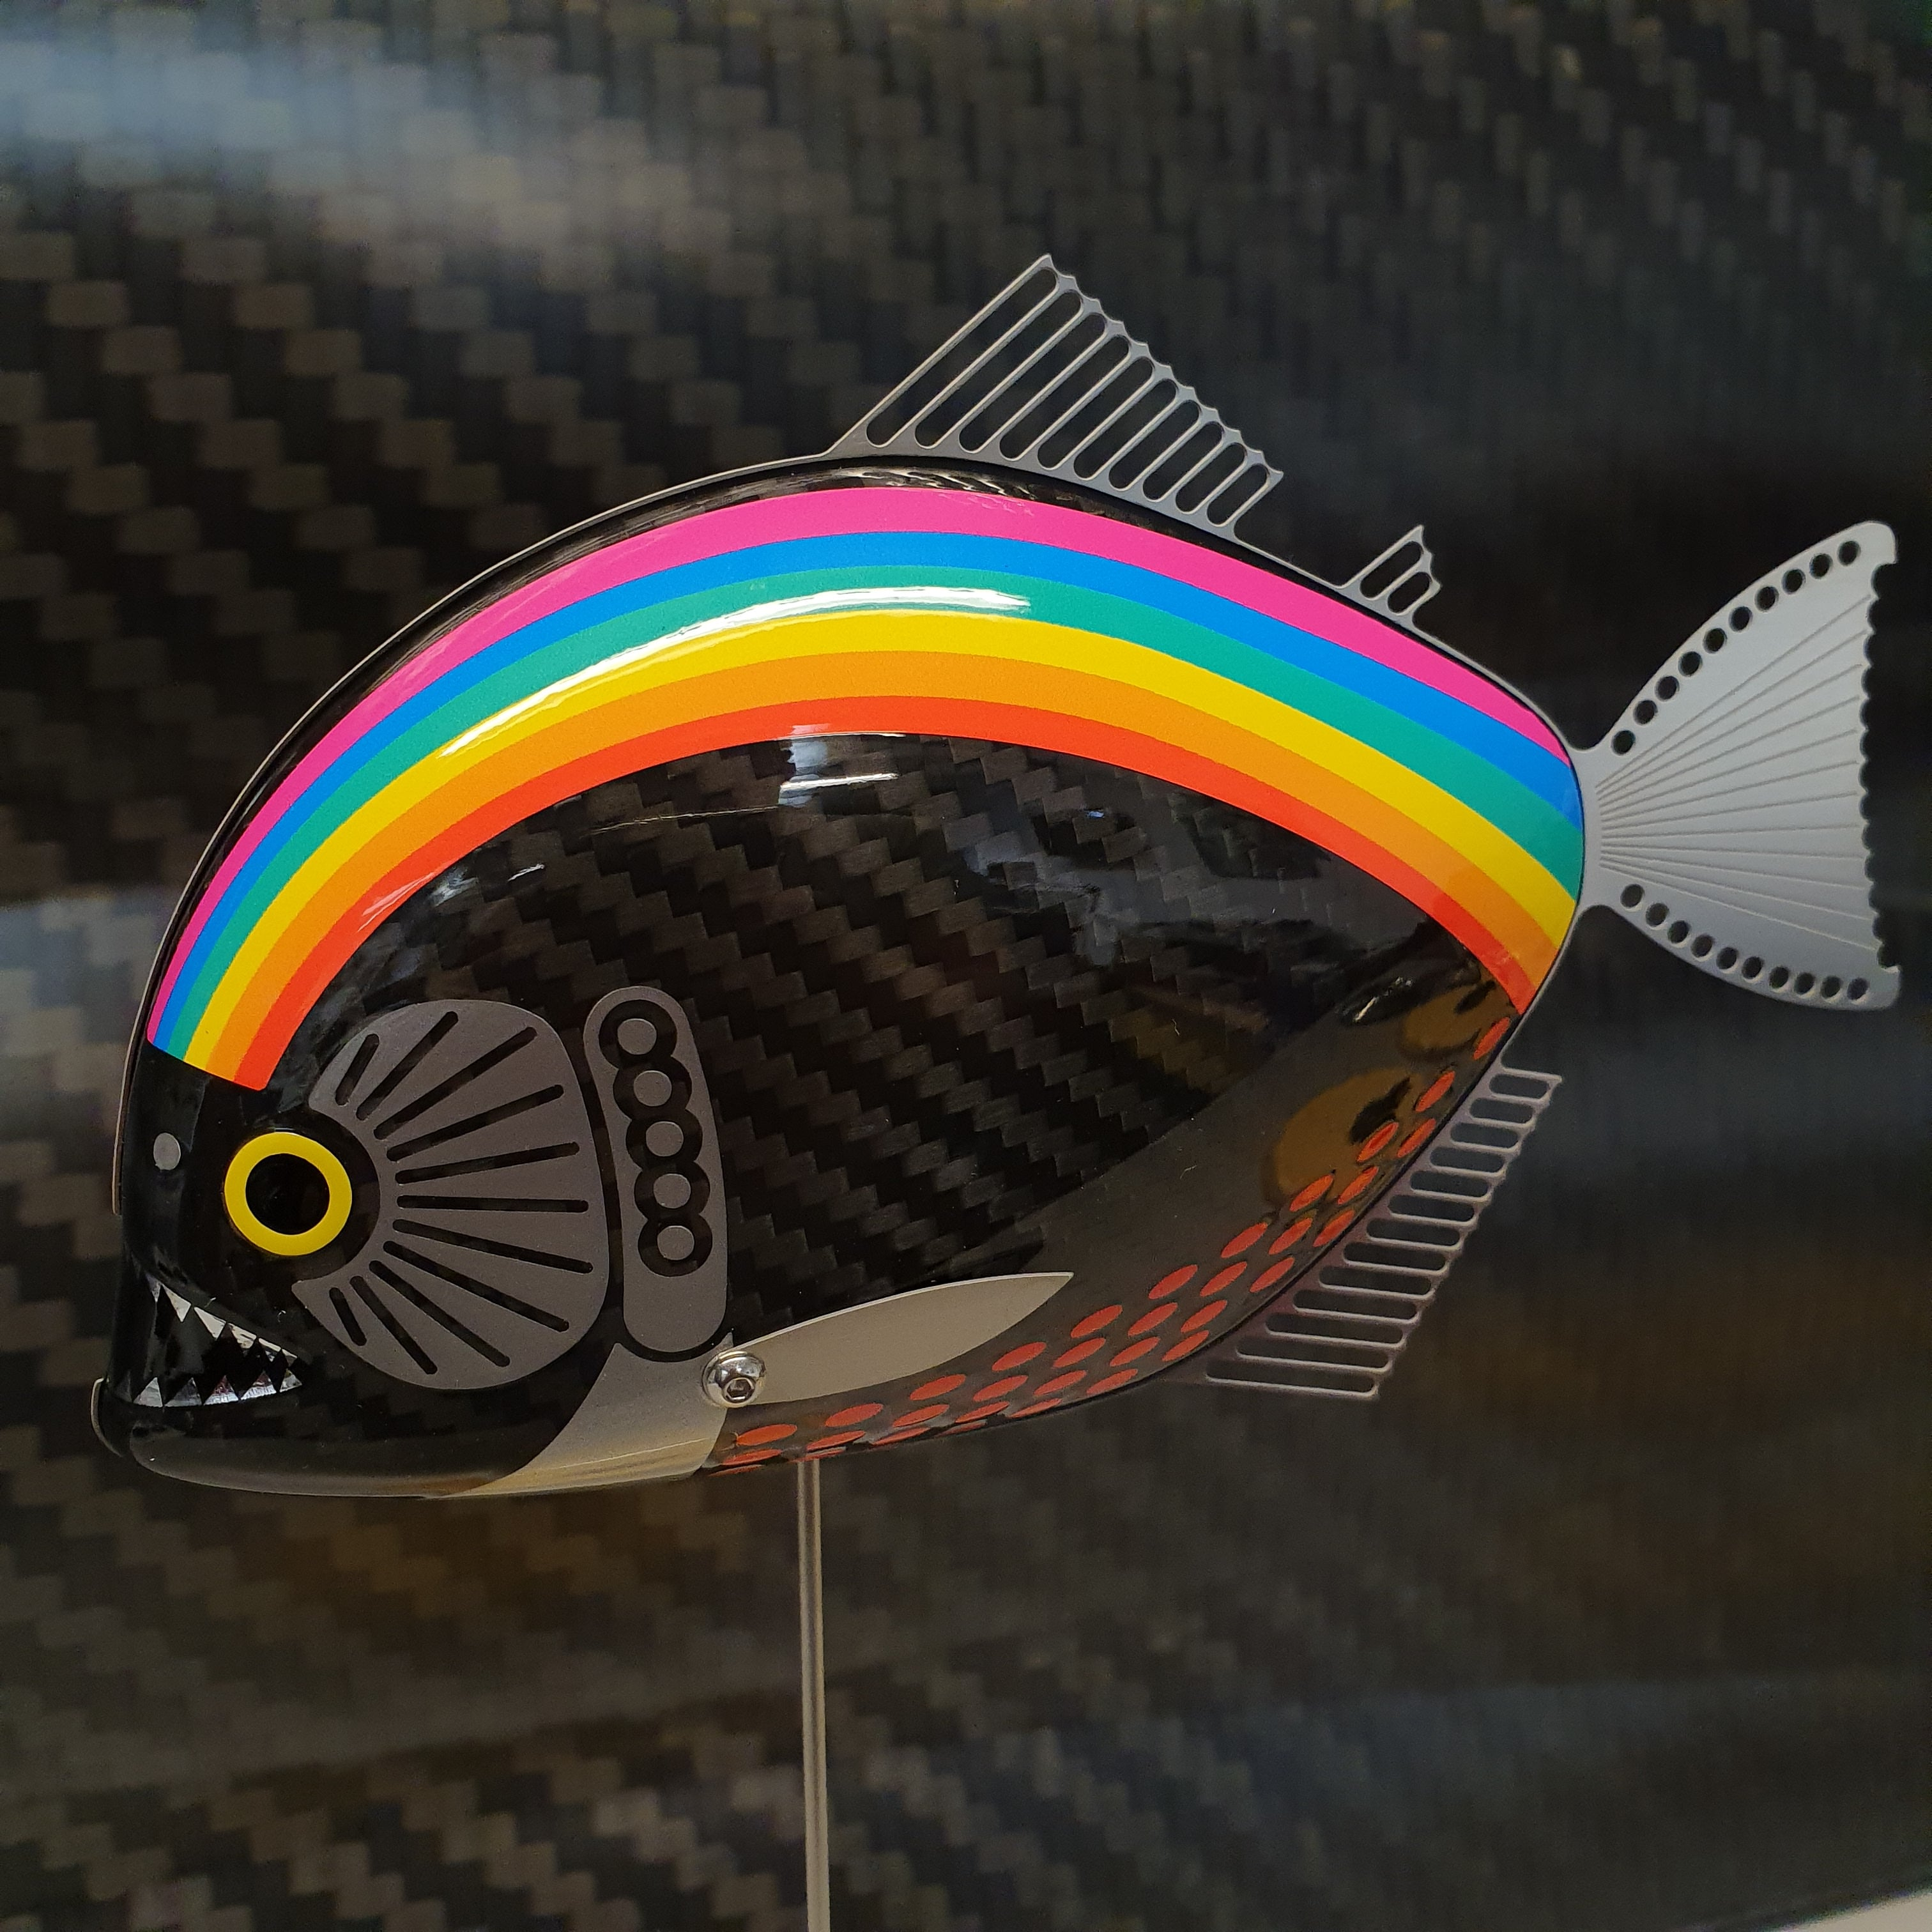 NHS Baby Piranha by Alastair Gibson/Carbon Art 45